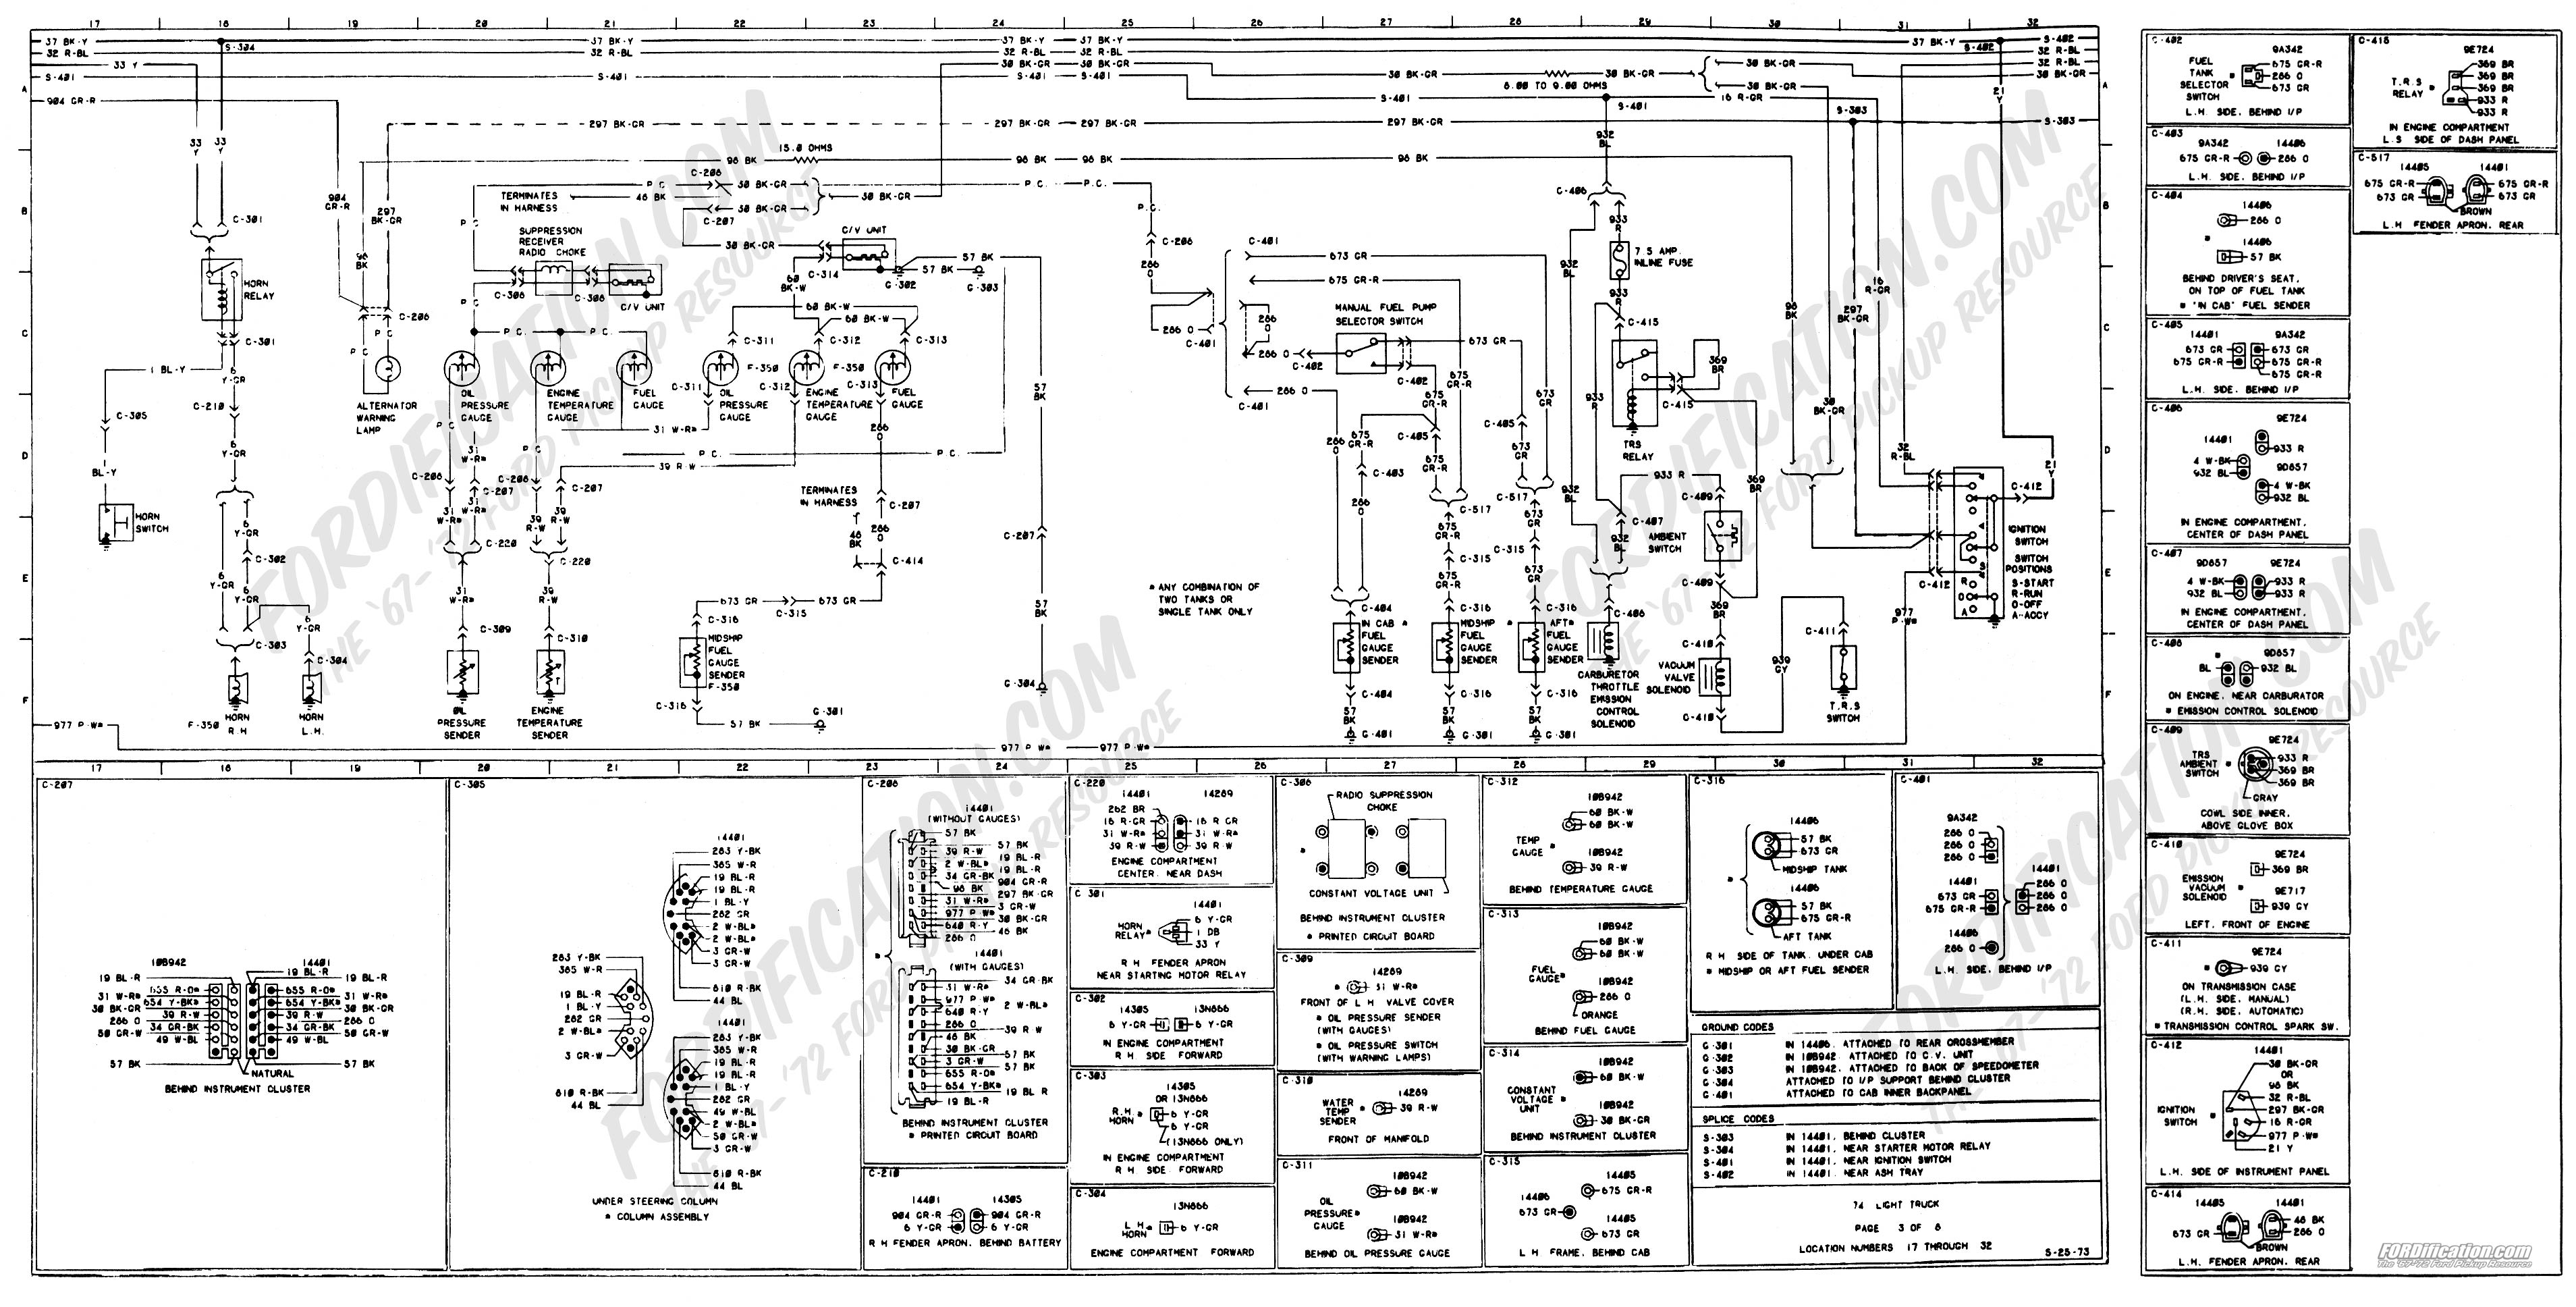 wiring_74master_3of8 1973 1979 ford truck wiring diagrams & schematics fordification net ford ltl 9000 wiring diagram at gsmportal.co